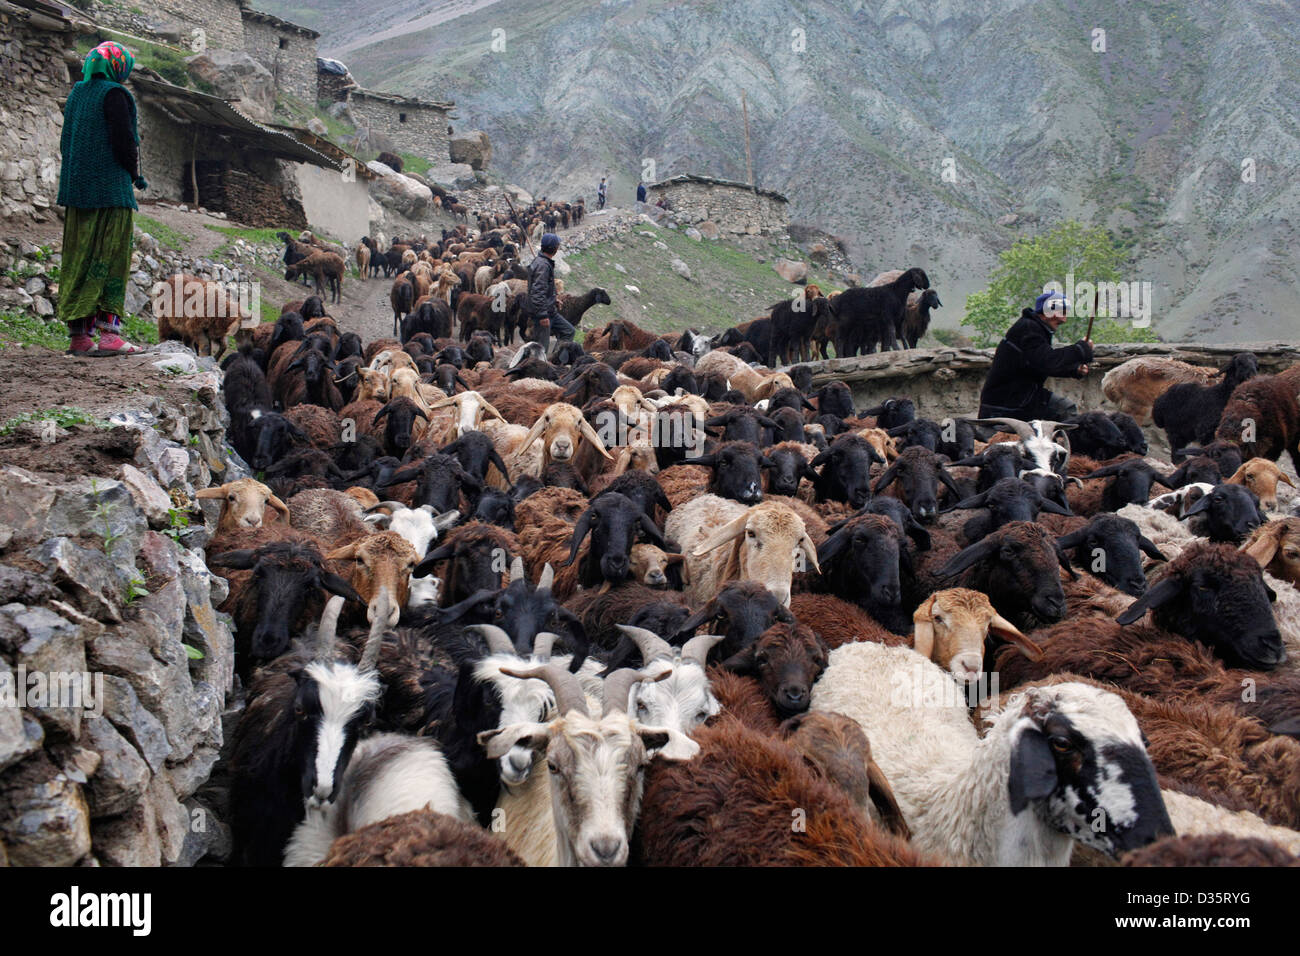 Obi Herd Yaghnobi Shepherds During Their Annual Migration To The High